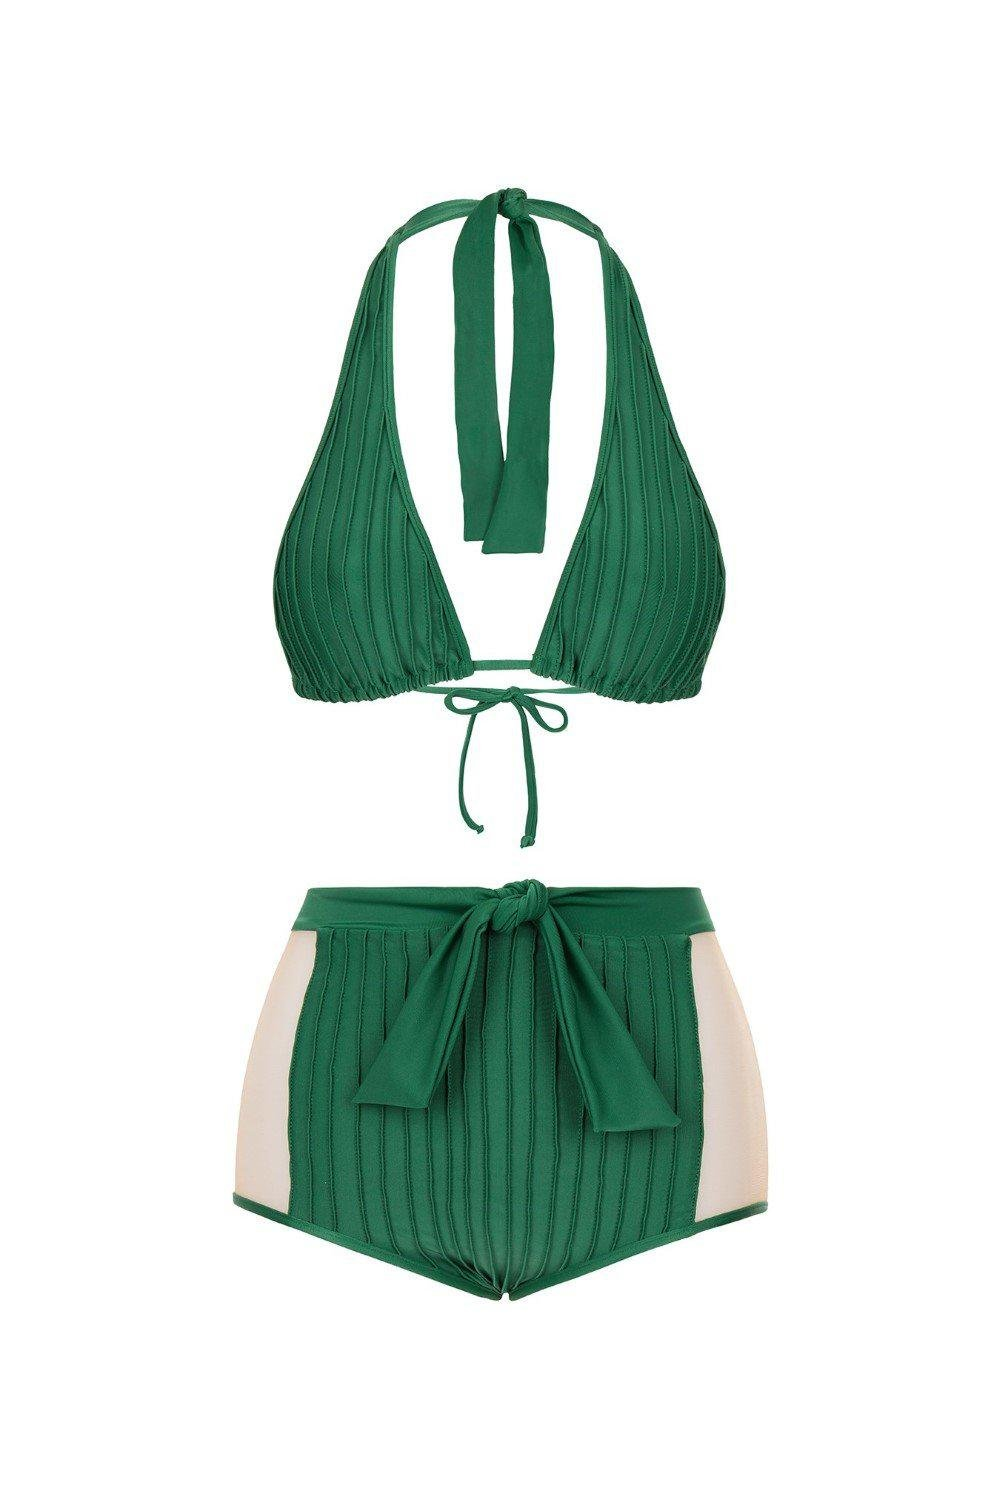 Fiore Solid Hot Pants Bikini with Tulle 2